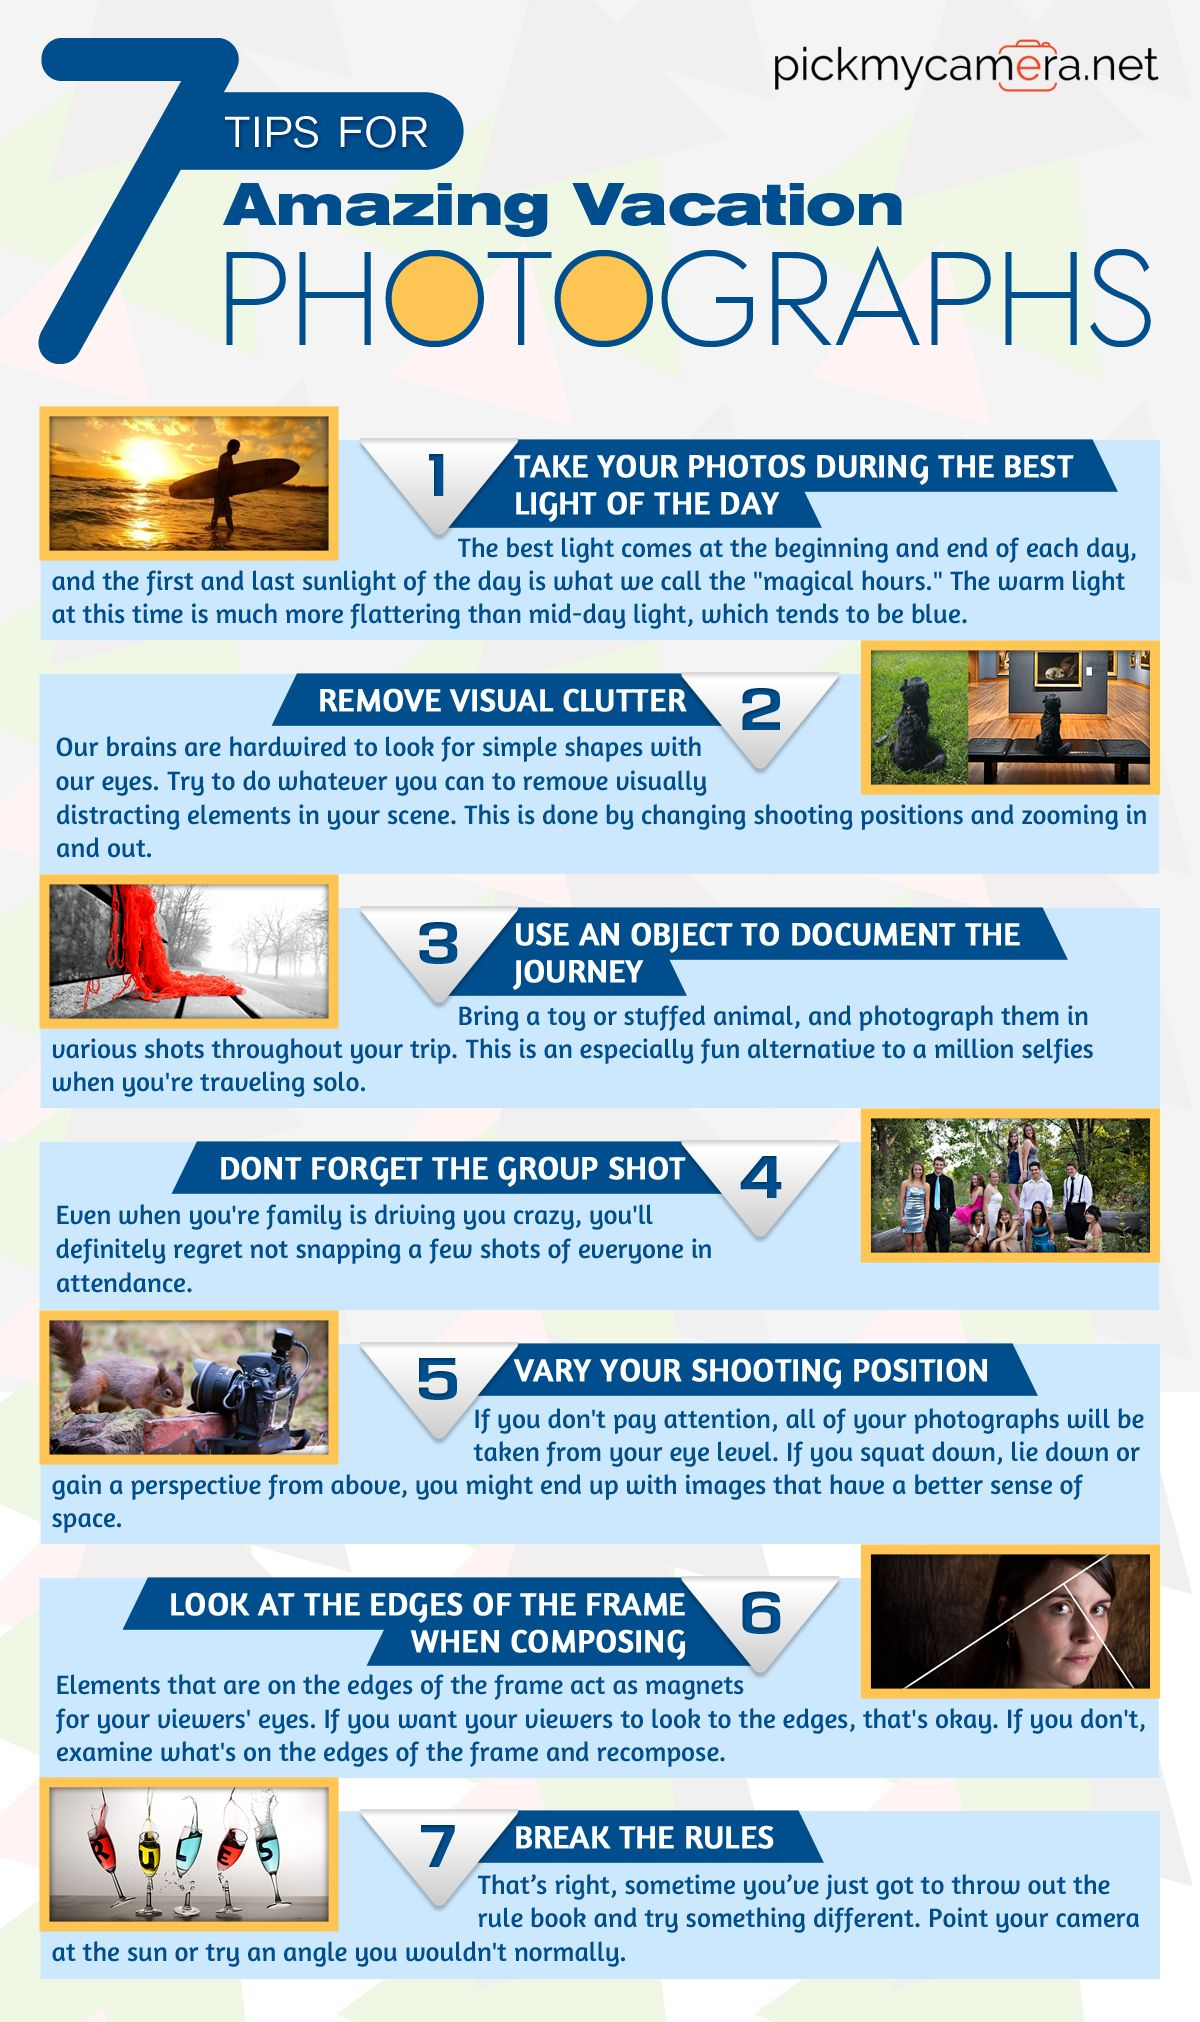 7_Tips_For_Great_Vacation_Photographs-infographic